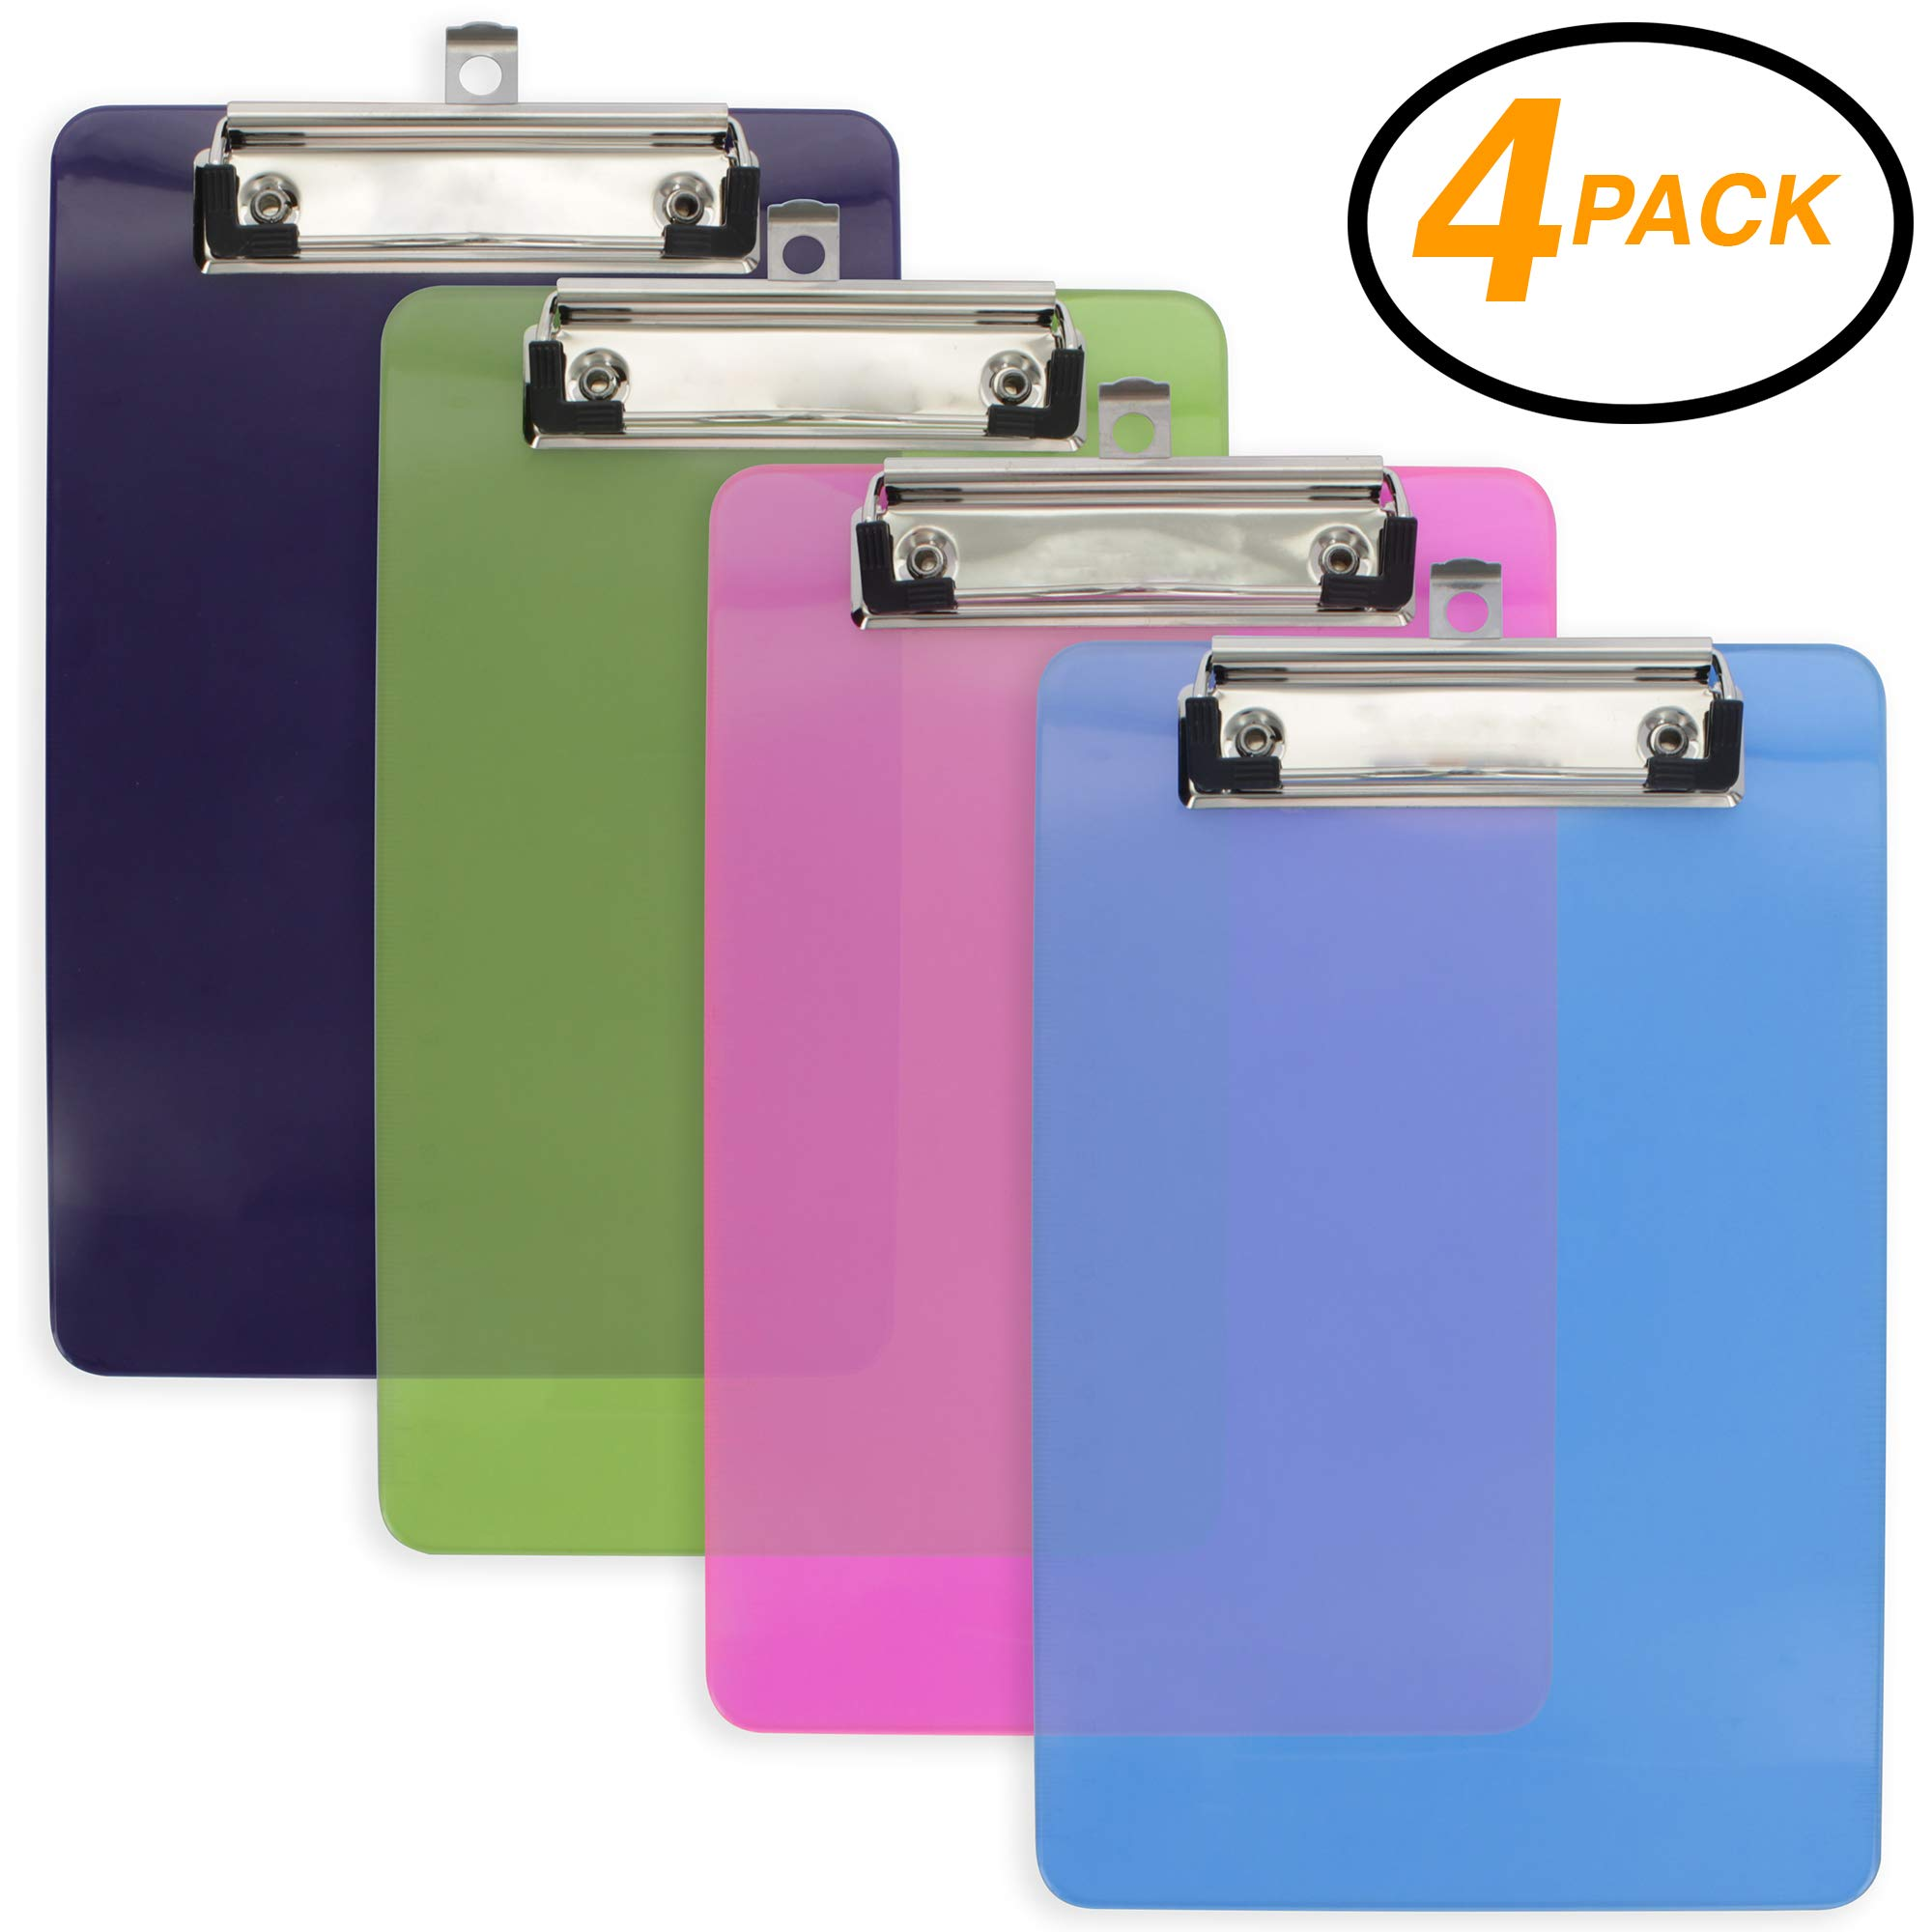 Emraw Plastic Clipboard Translucent Small Memo Pad Size Hardboard (6'' x 9'') Sturdy Durable Low Profile Clip with Hanging Loop for Home, Offices, Schools, Hospitals - 4 Pack